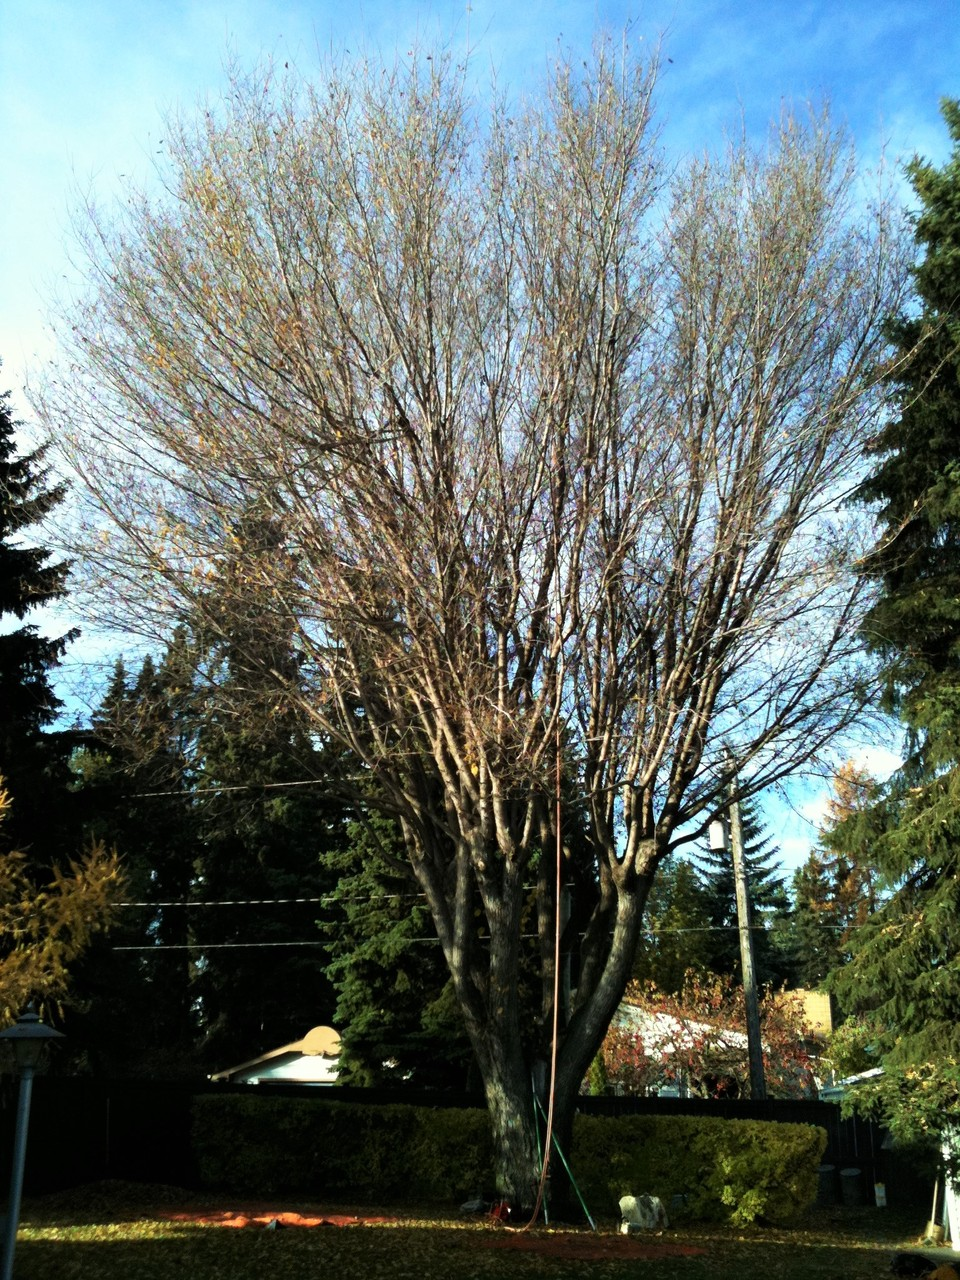 A Mature American Elm 25 years after being topped. The canopy is full of dead limbs, crossing limbs, and has become self damaging